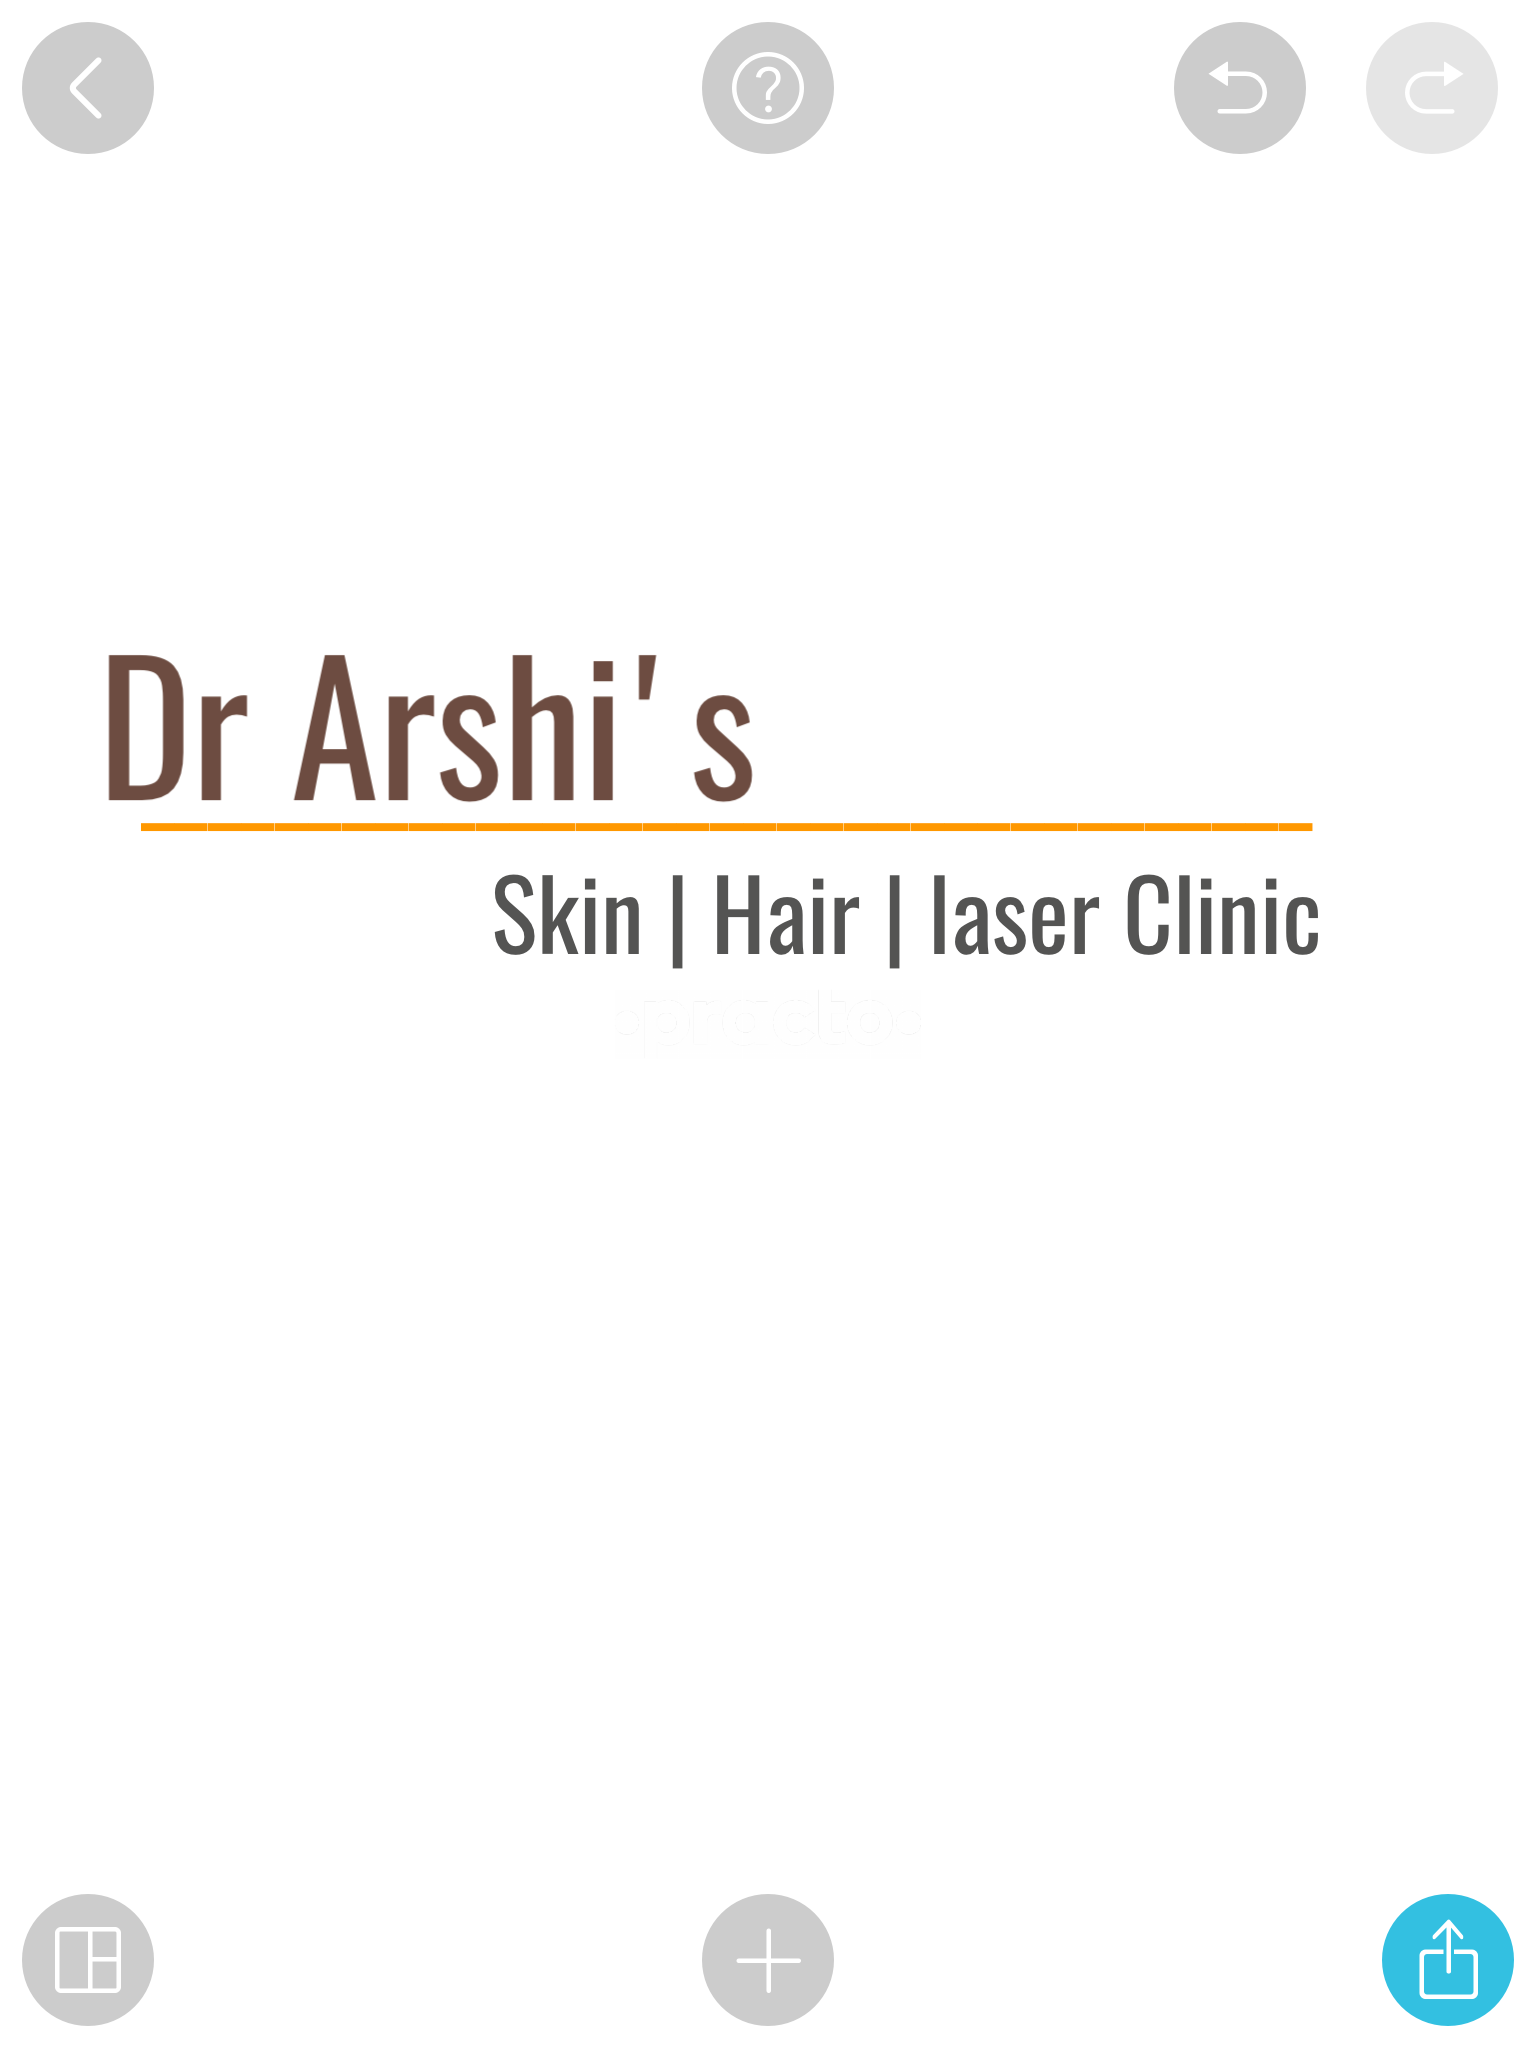 Dr ARSHI Skin Story Skin & Laser Clinic